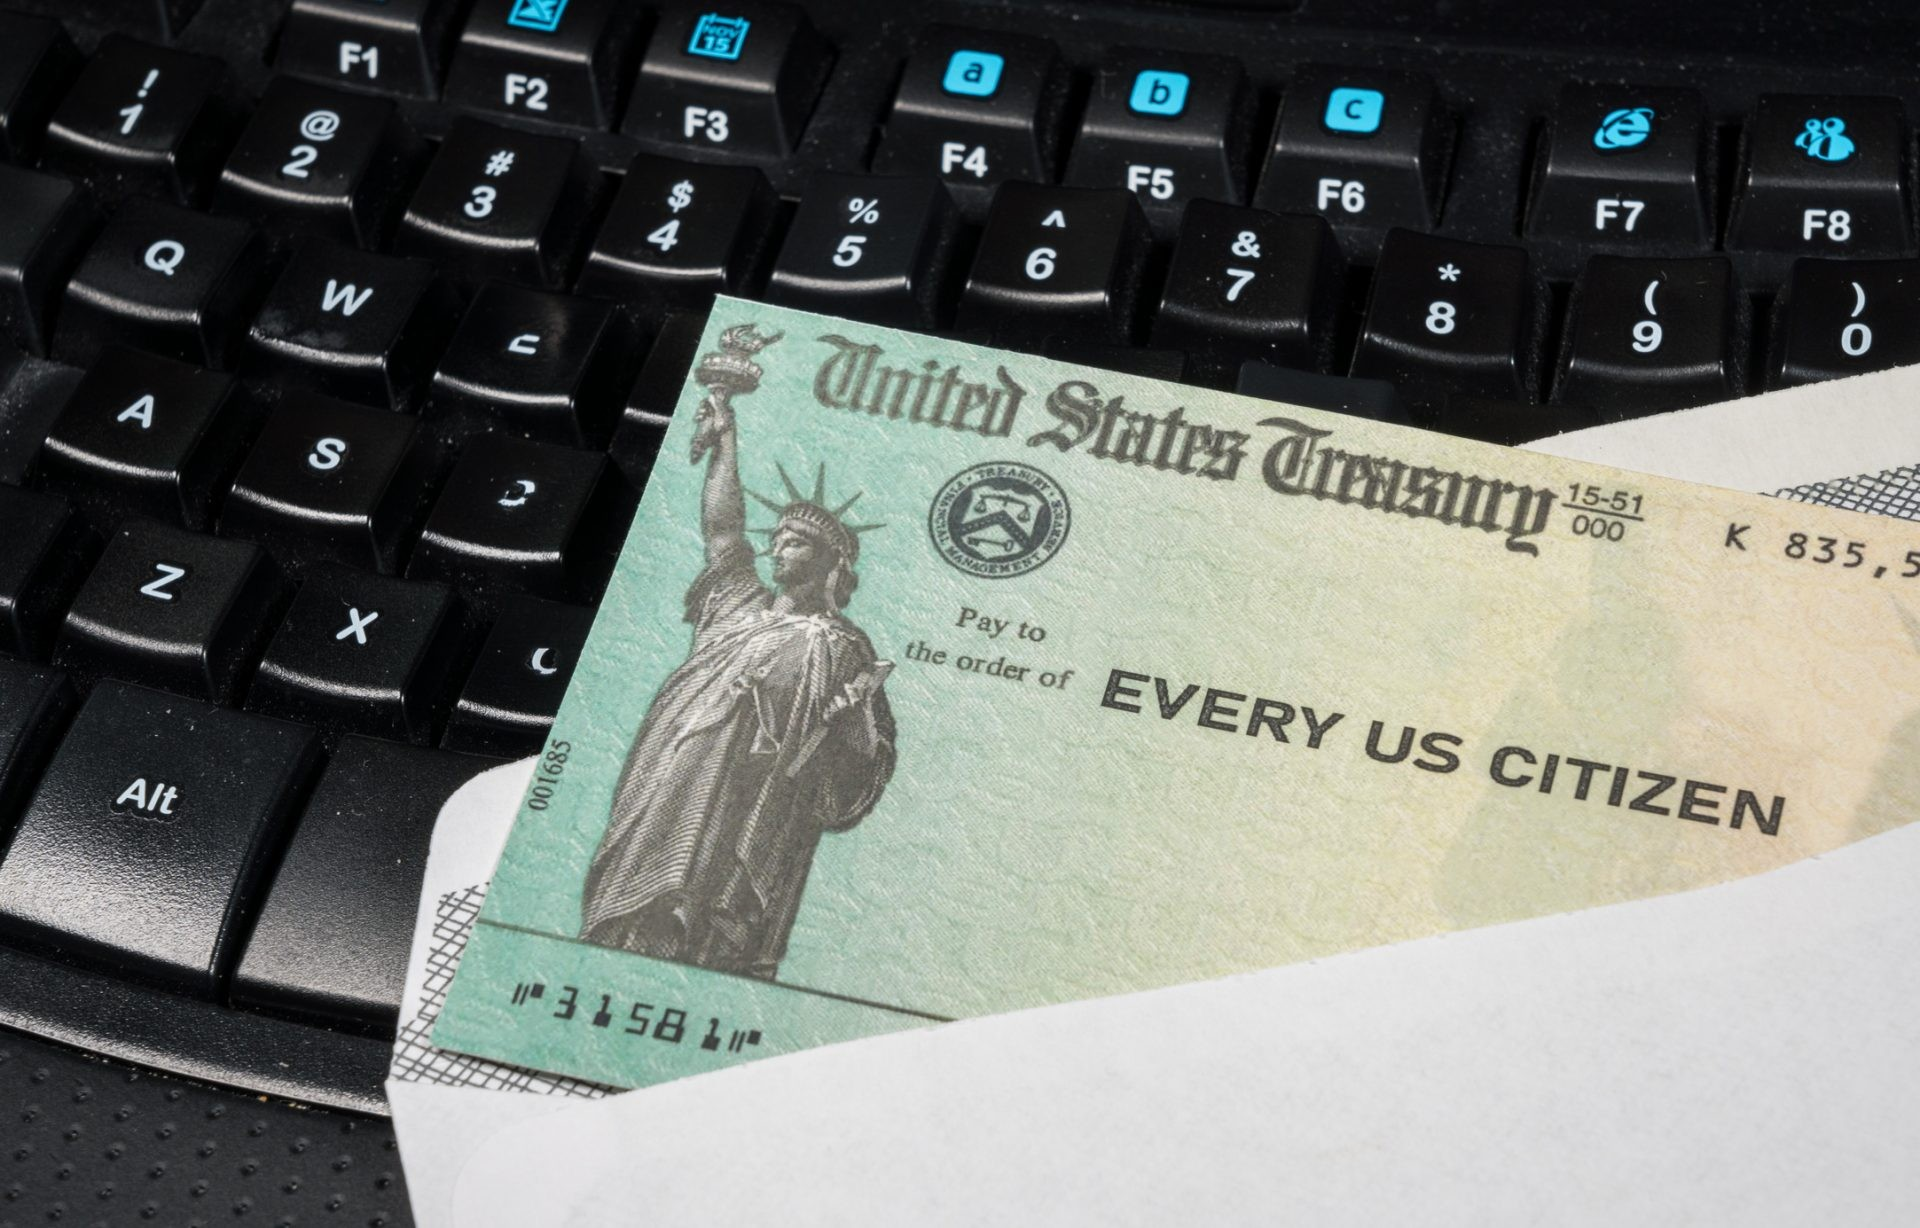 US Treasury concept check to illustrate coronavirus stimulus payment on keyboard used for working from home.